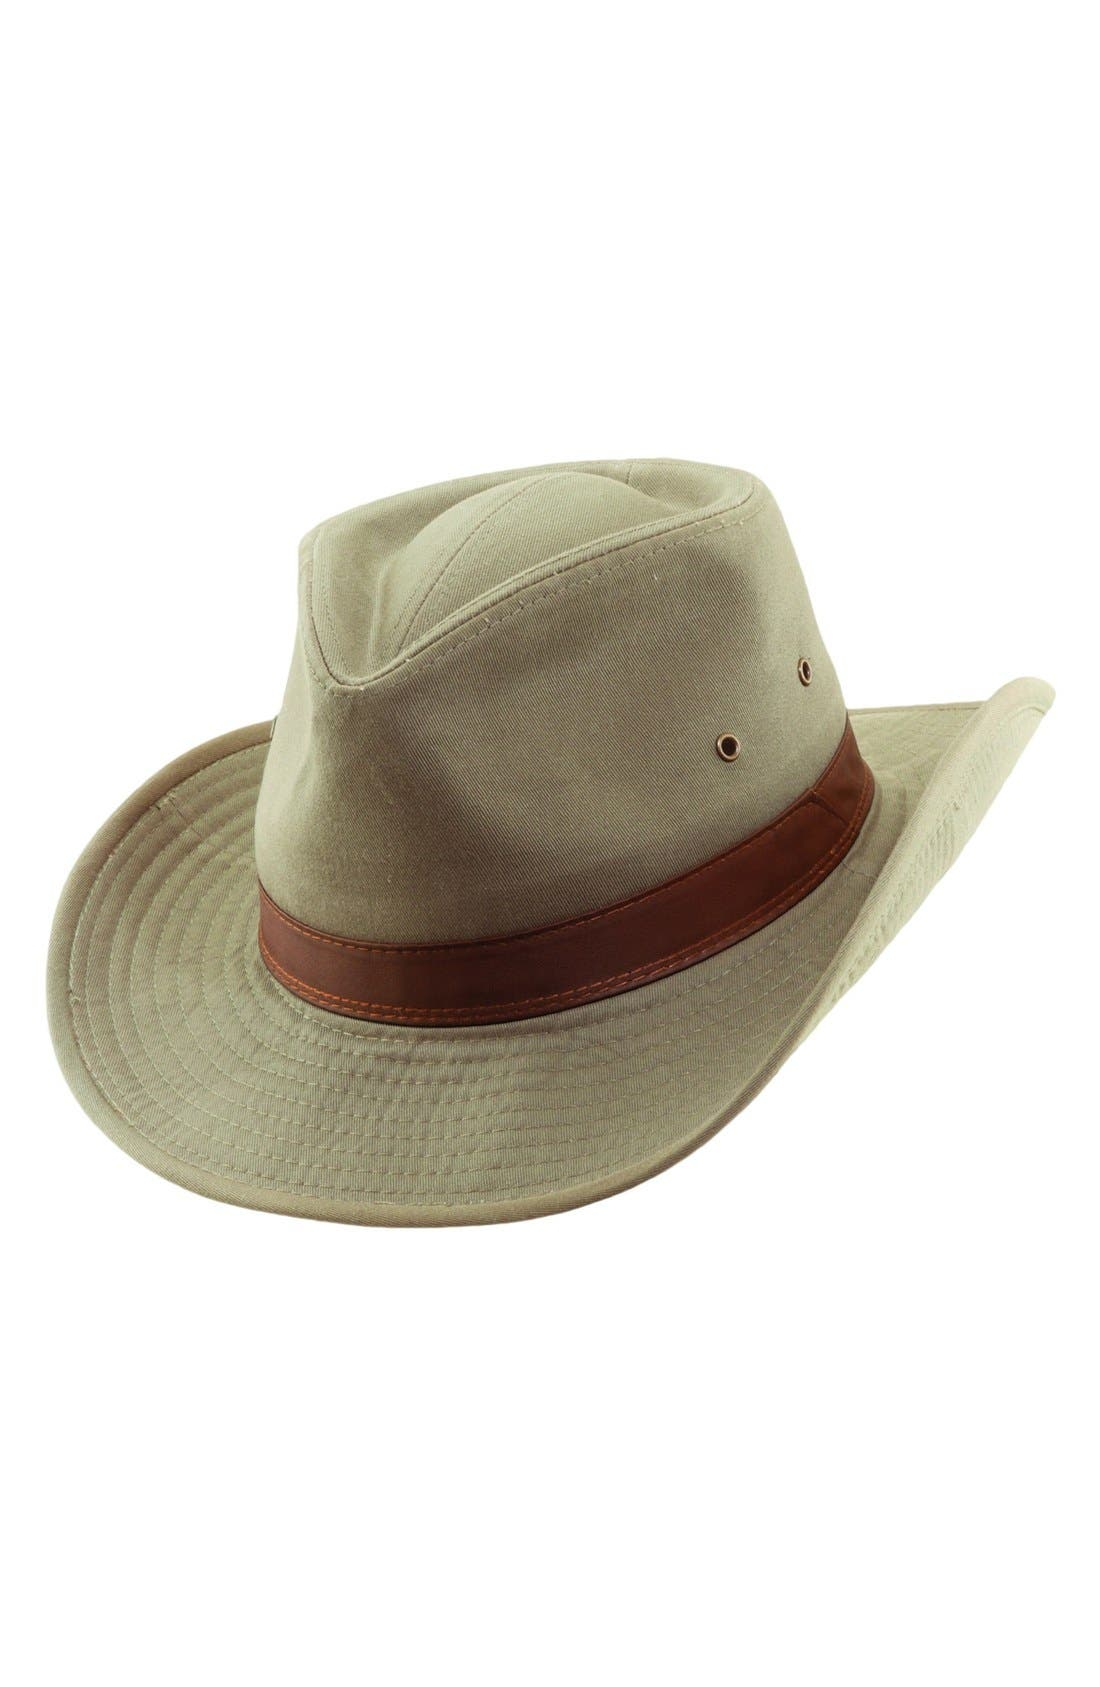 Alternate Image 1 Selected - Dorfman Pacific Cotton Outback Hat